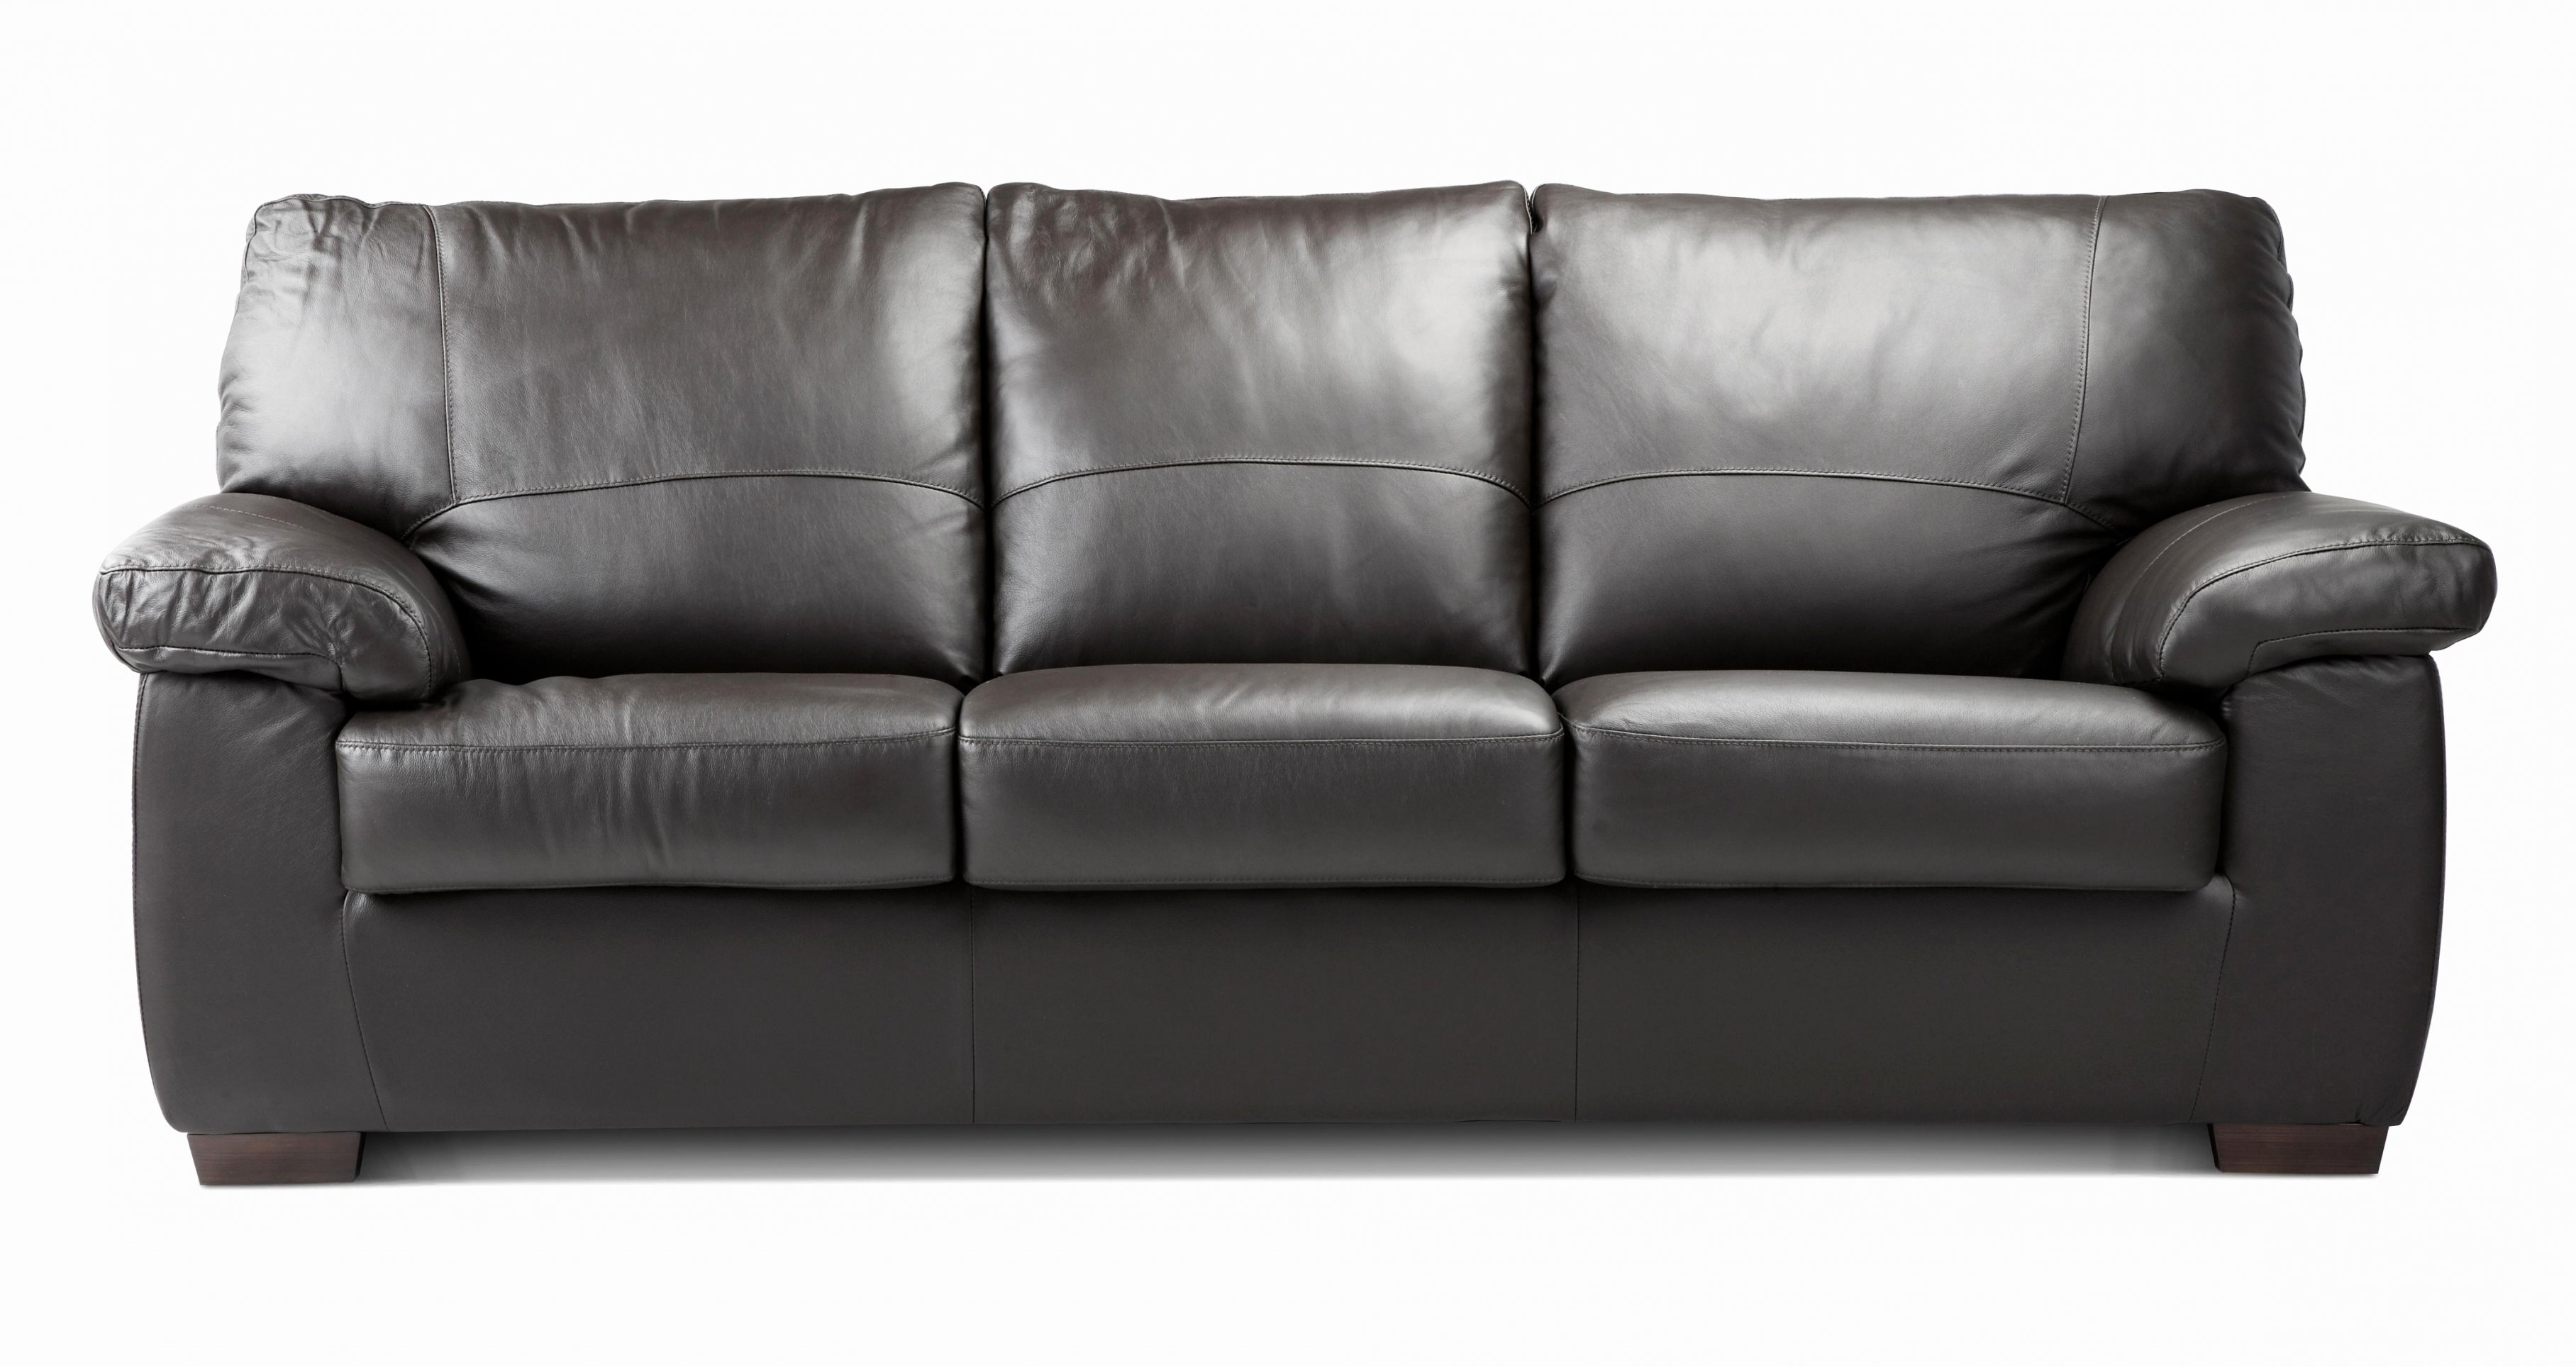 3 Seater Leather Sofas within Most Recent 3 Seat Black Leather Sofa